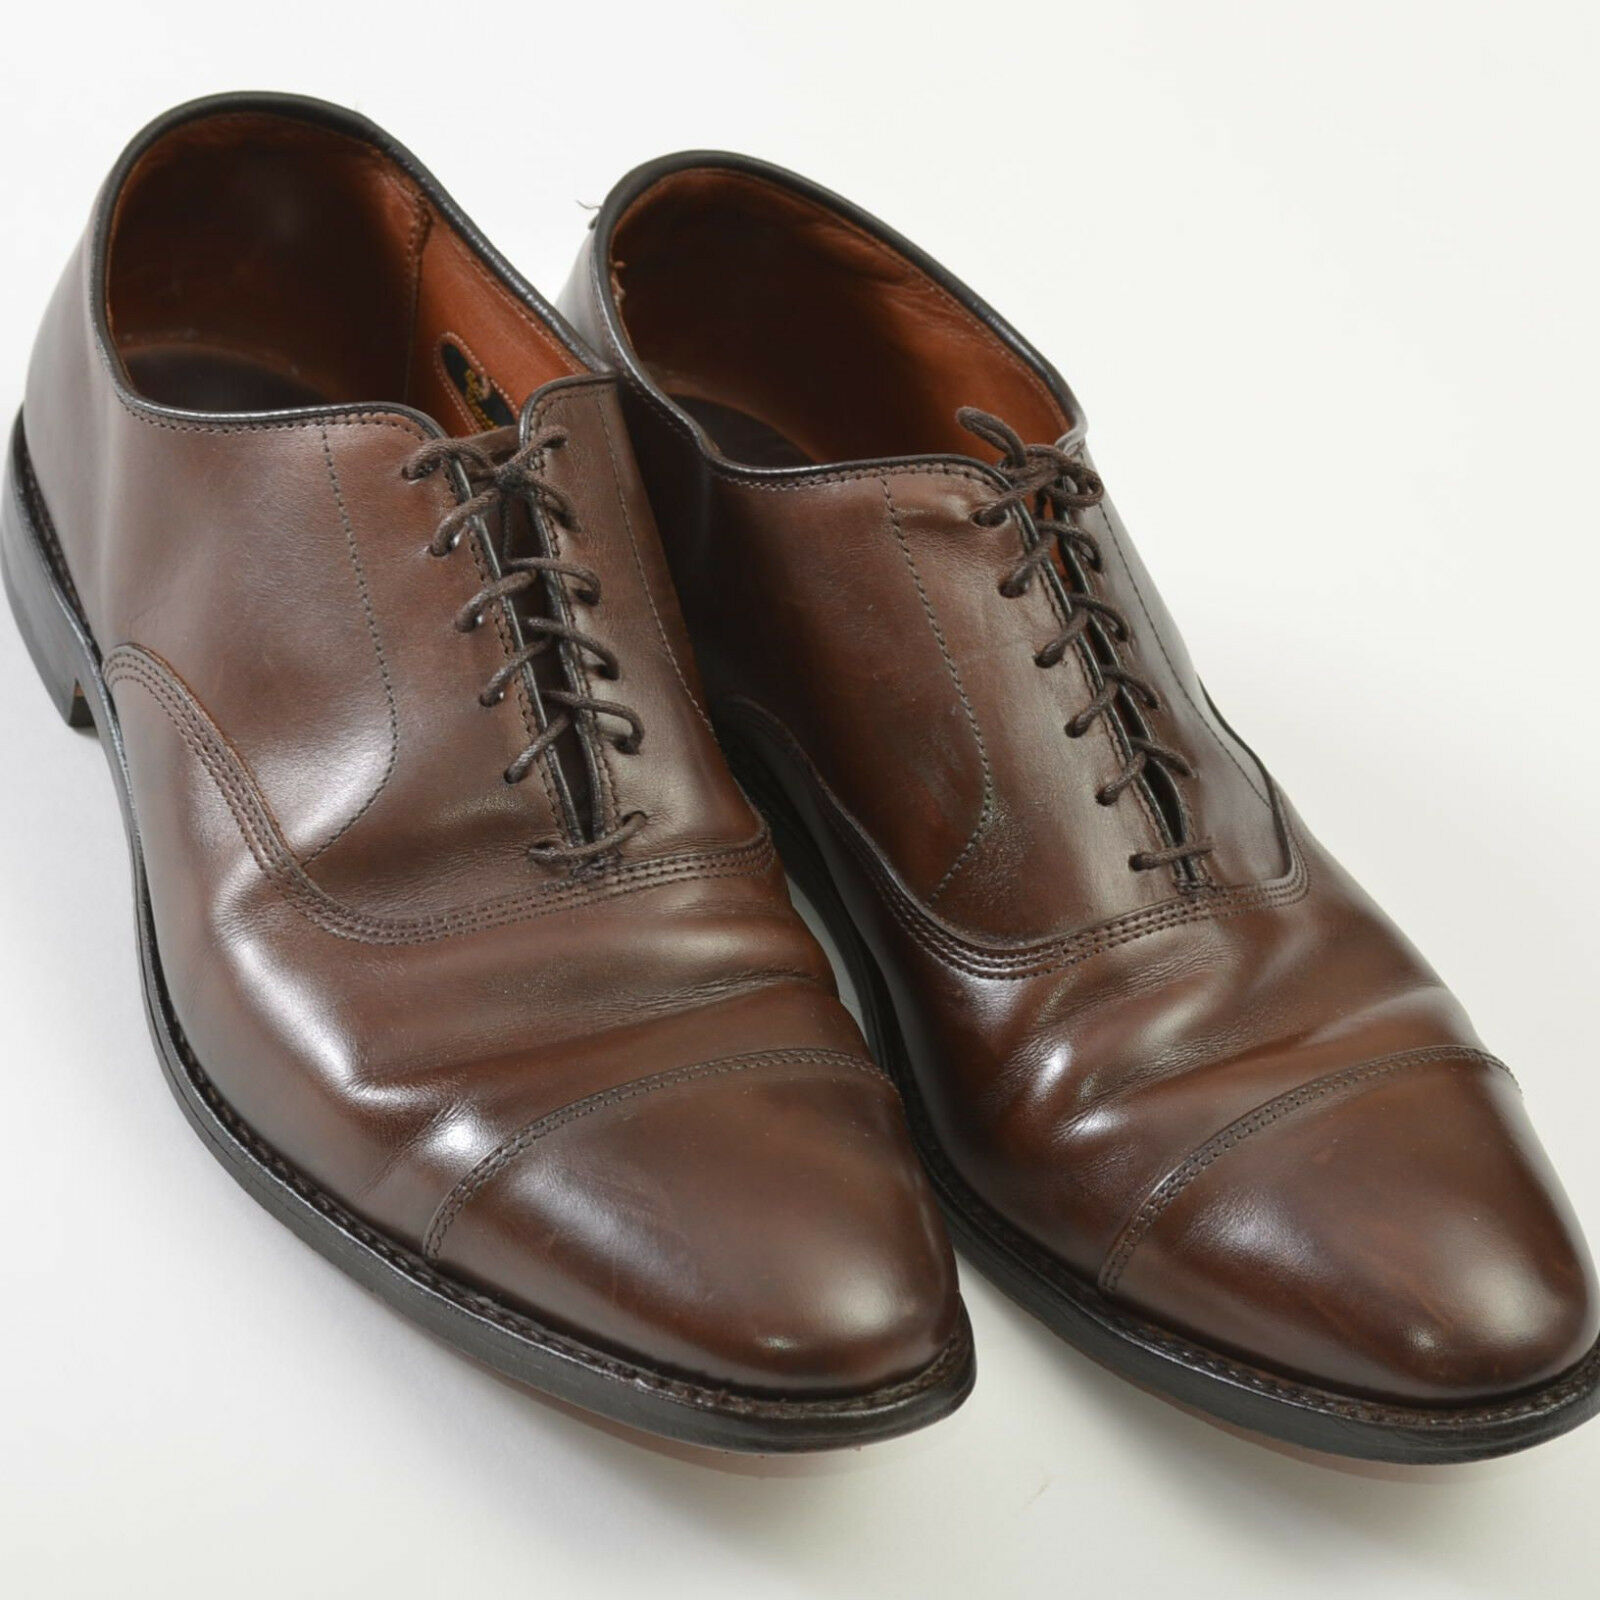 Allen Edmonds Park Avenue Cap Toe marrone Pelle Oxford Scarpe Uomo 10.5 D